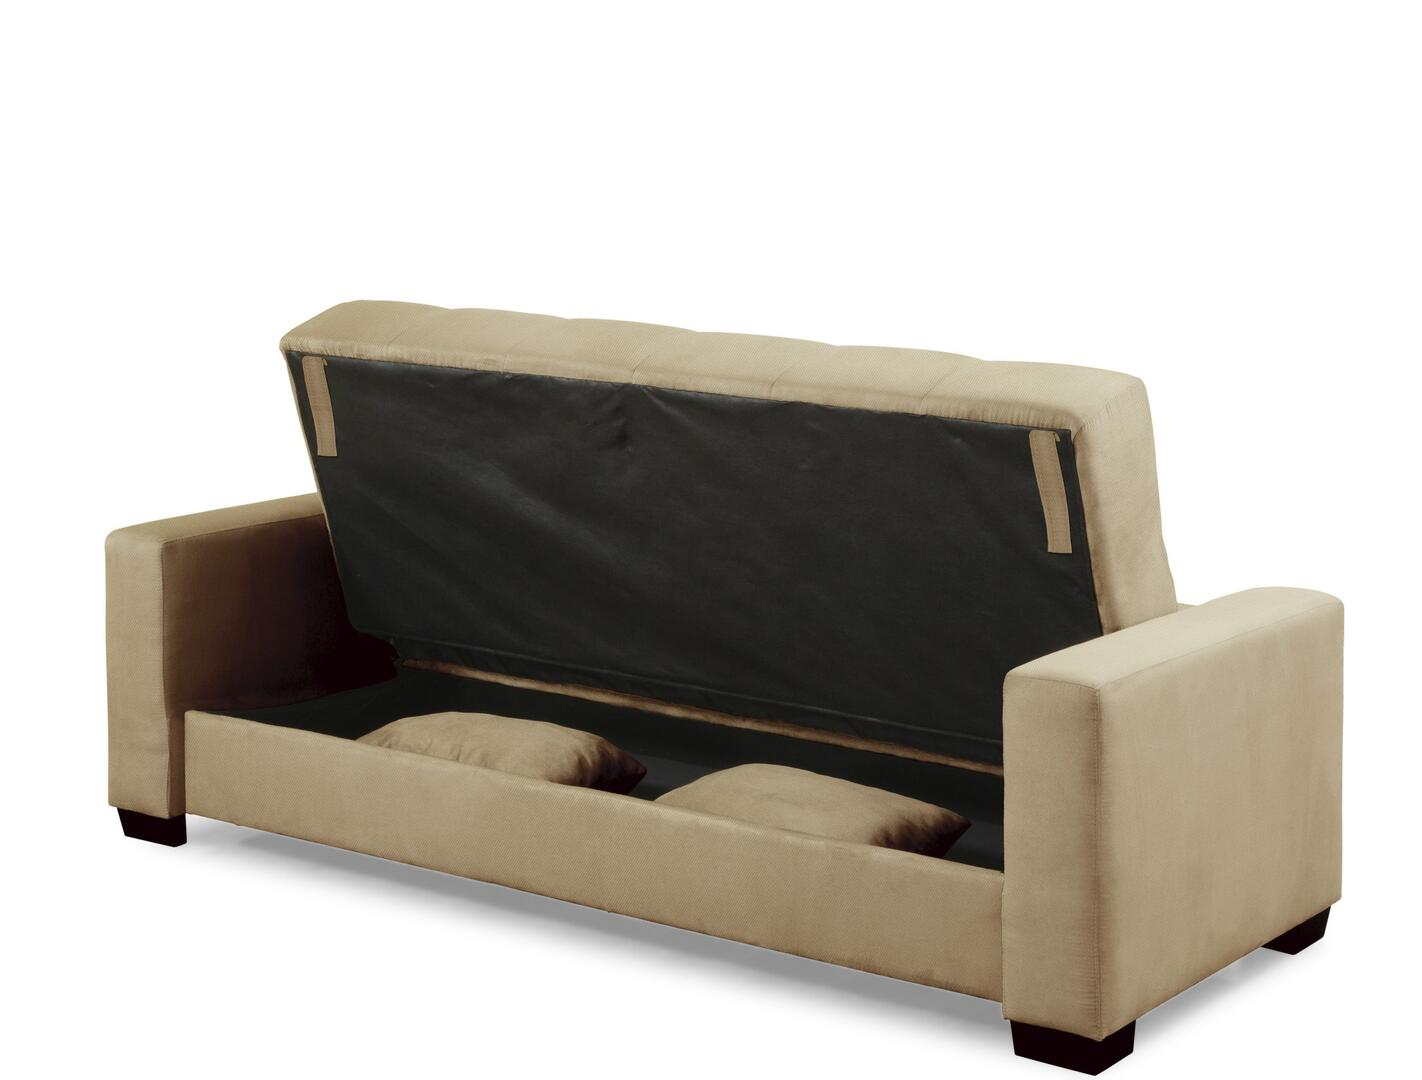 Lifestyle Solutions Casual Convertibles Napa Beech Storage Compartment Right Profile